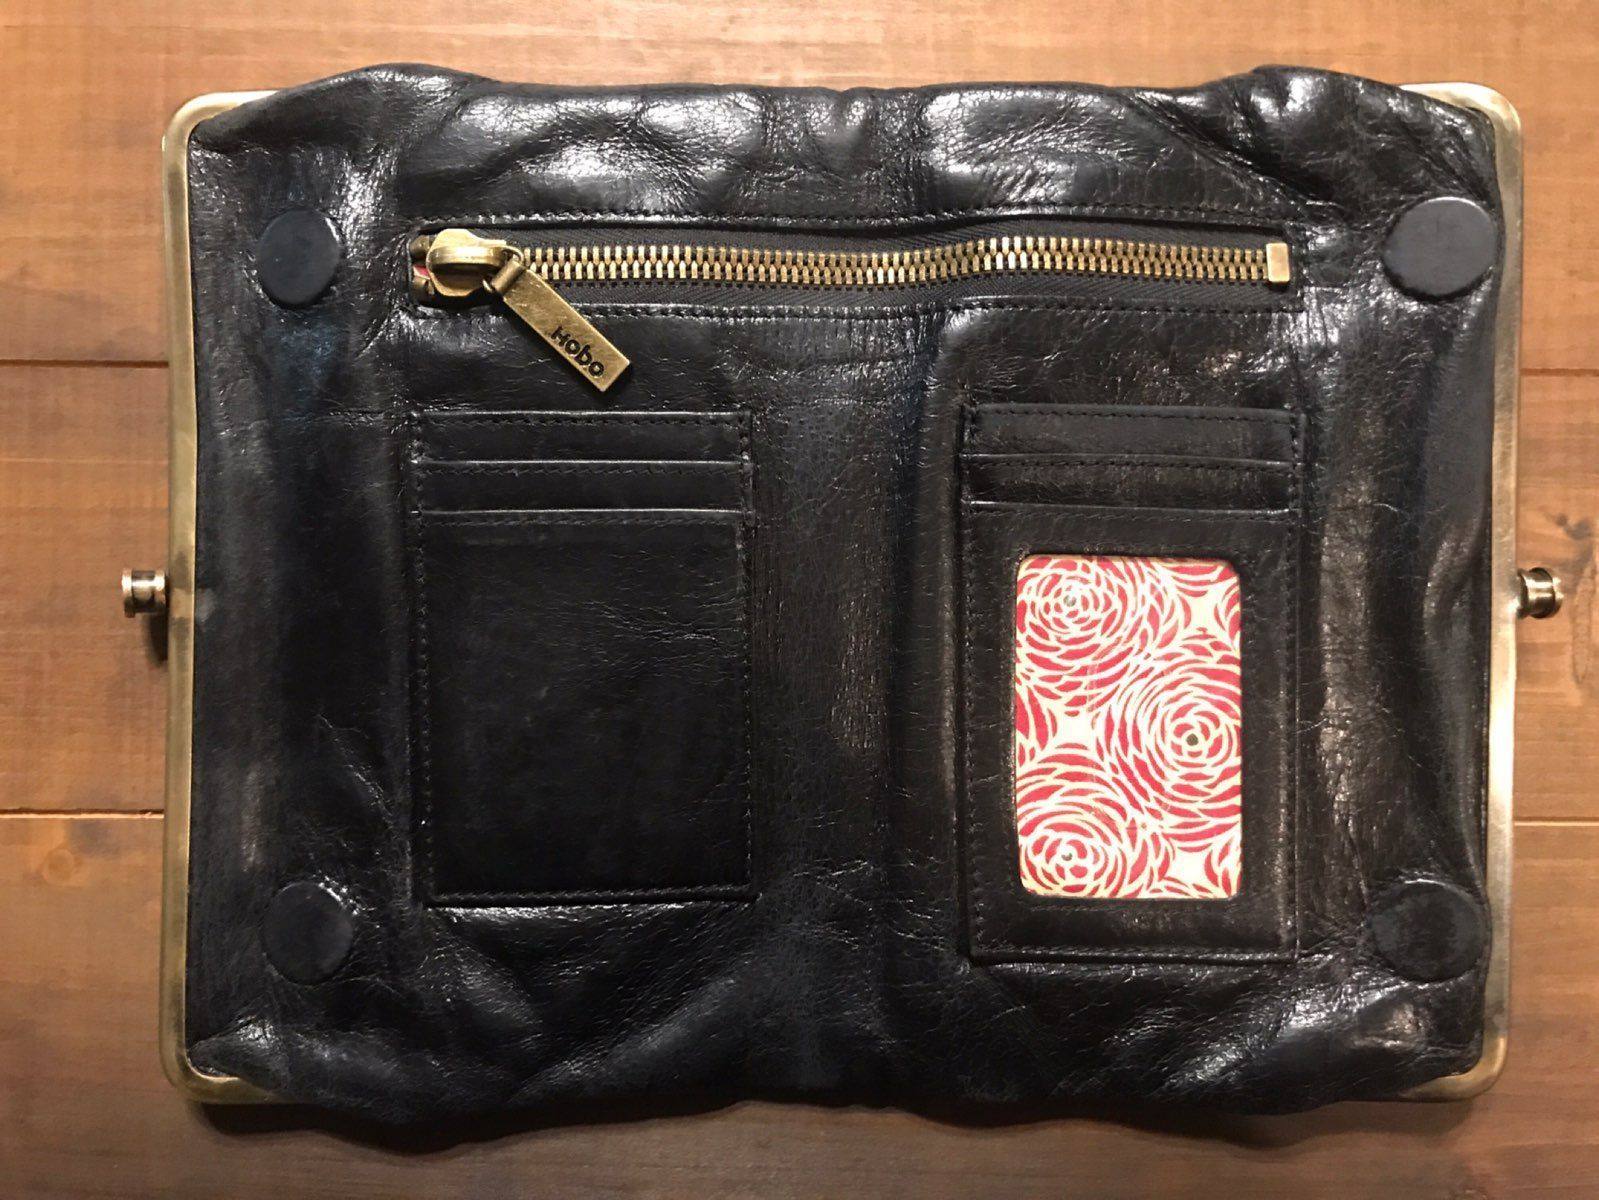 Hobo Lauren Black Leather Wallet Clutch